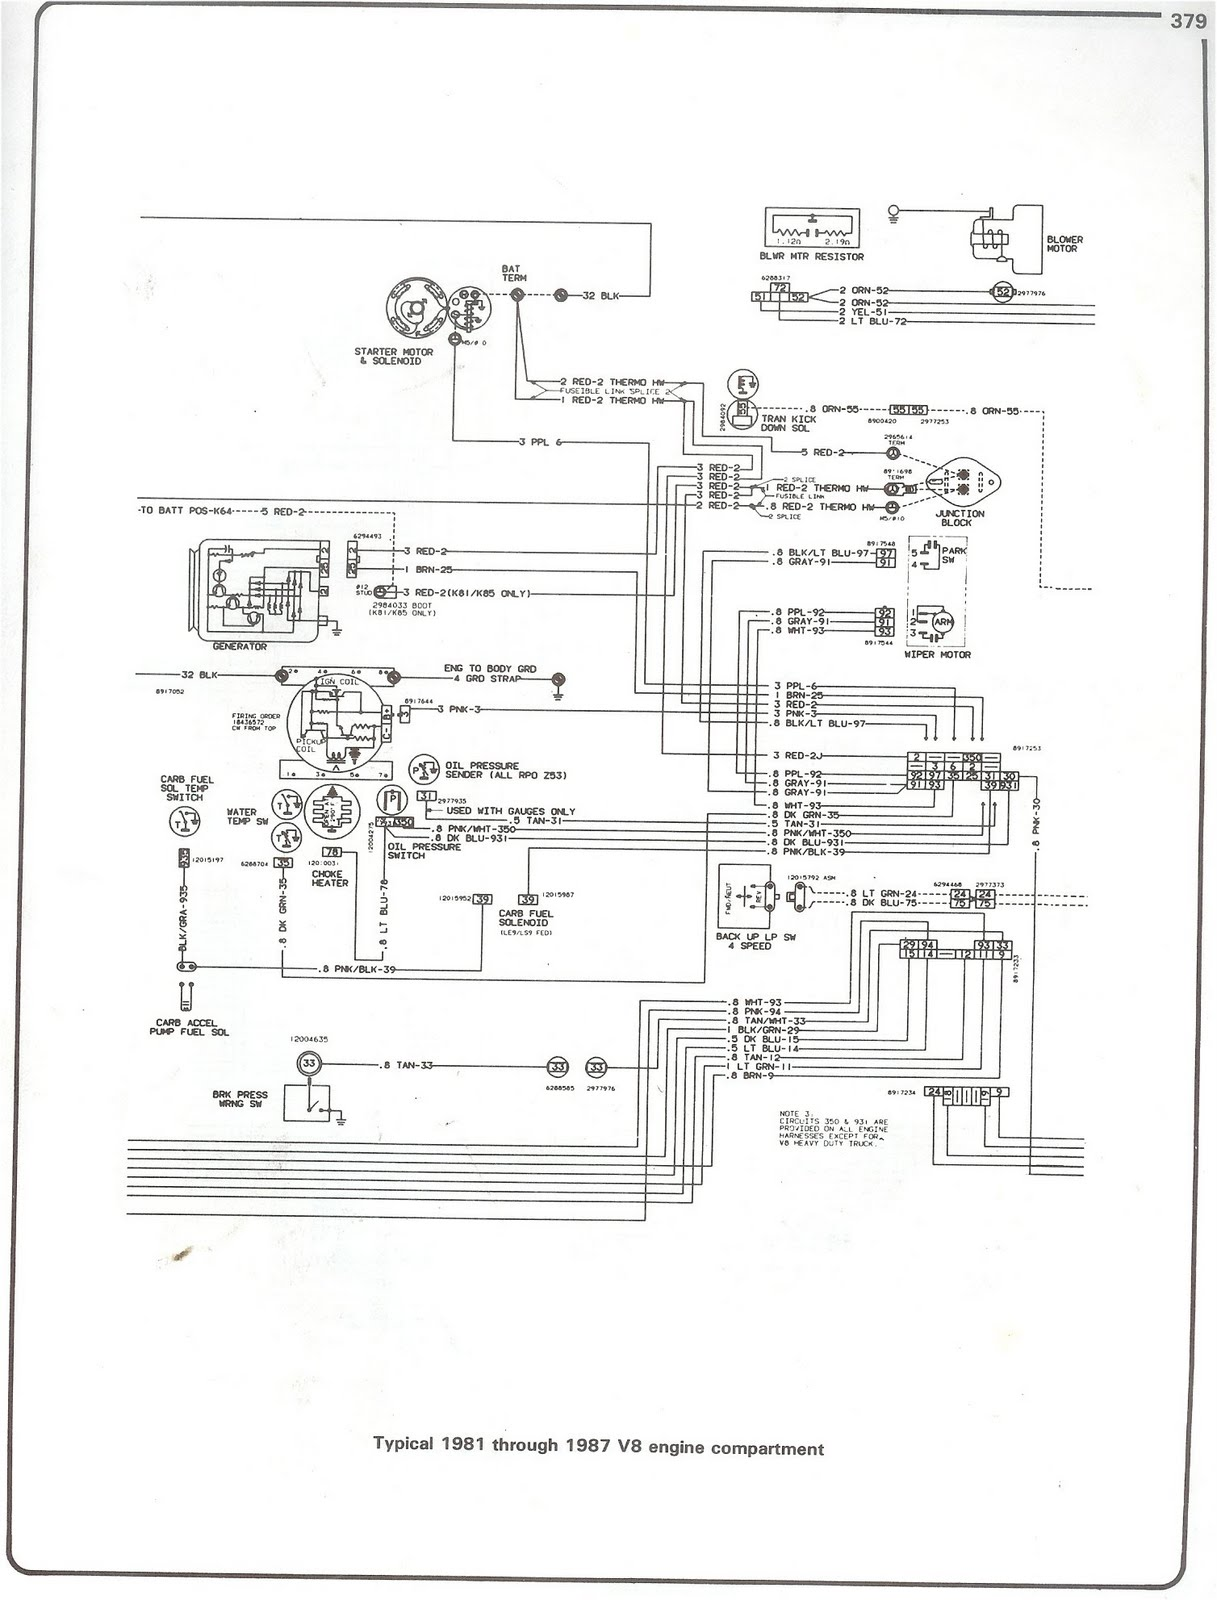 81 87_chevy_truck_V8_engine repair manuals toyota pickup 1981 wiring diagrams readingrat net 1982 chevy truck engine wiring diagram at alyssarenee.co